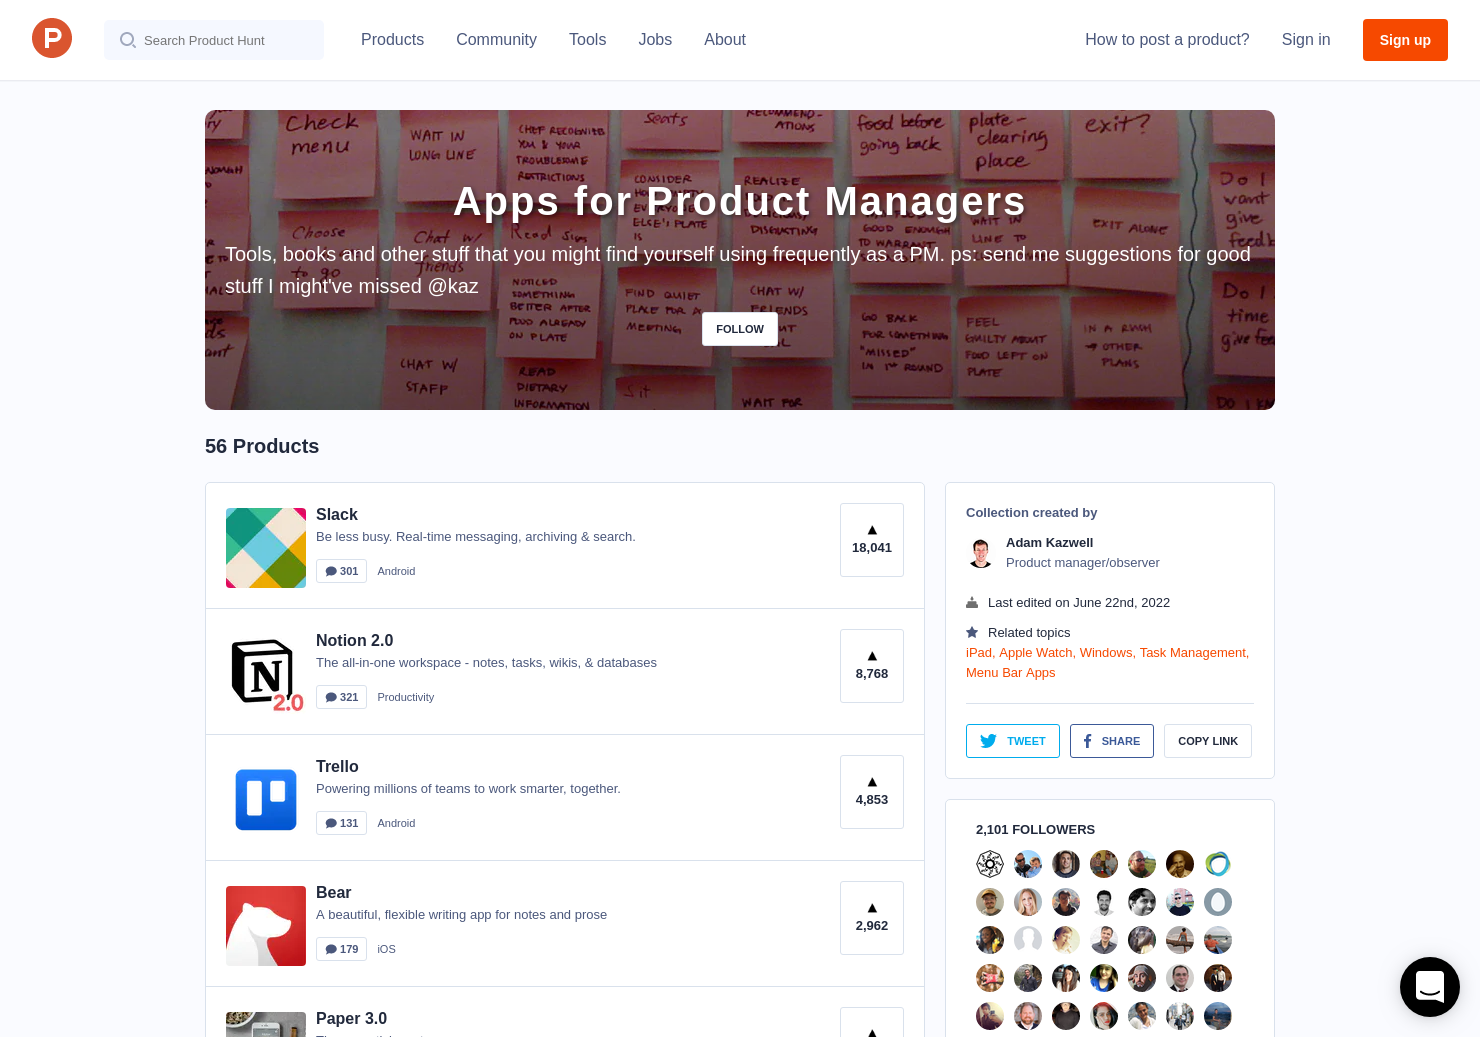 Apps for Product Managers by Adam Kazwell